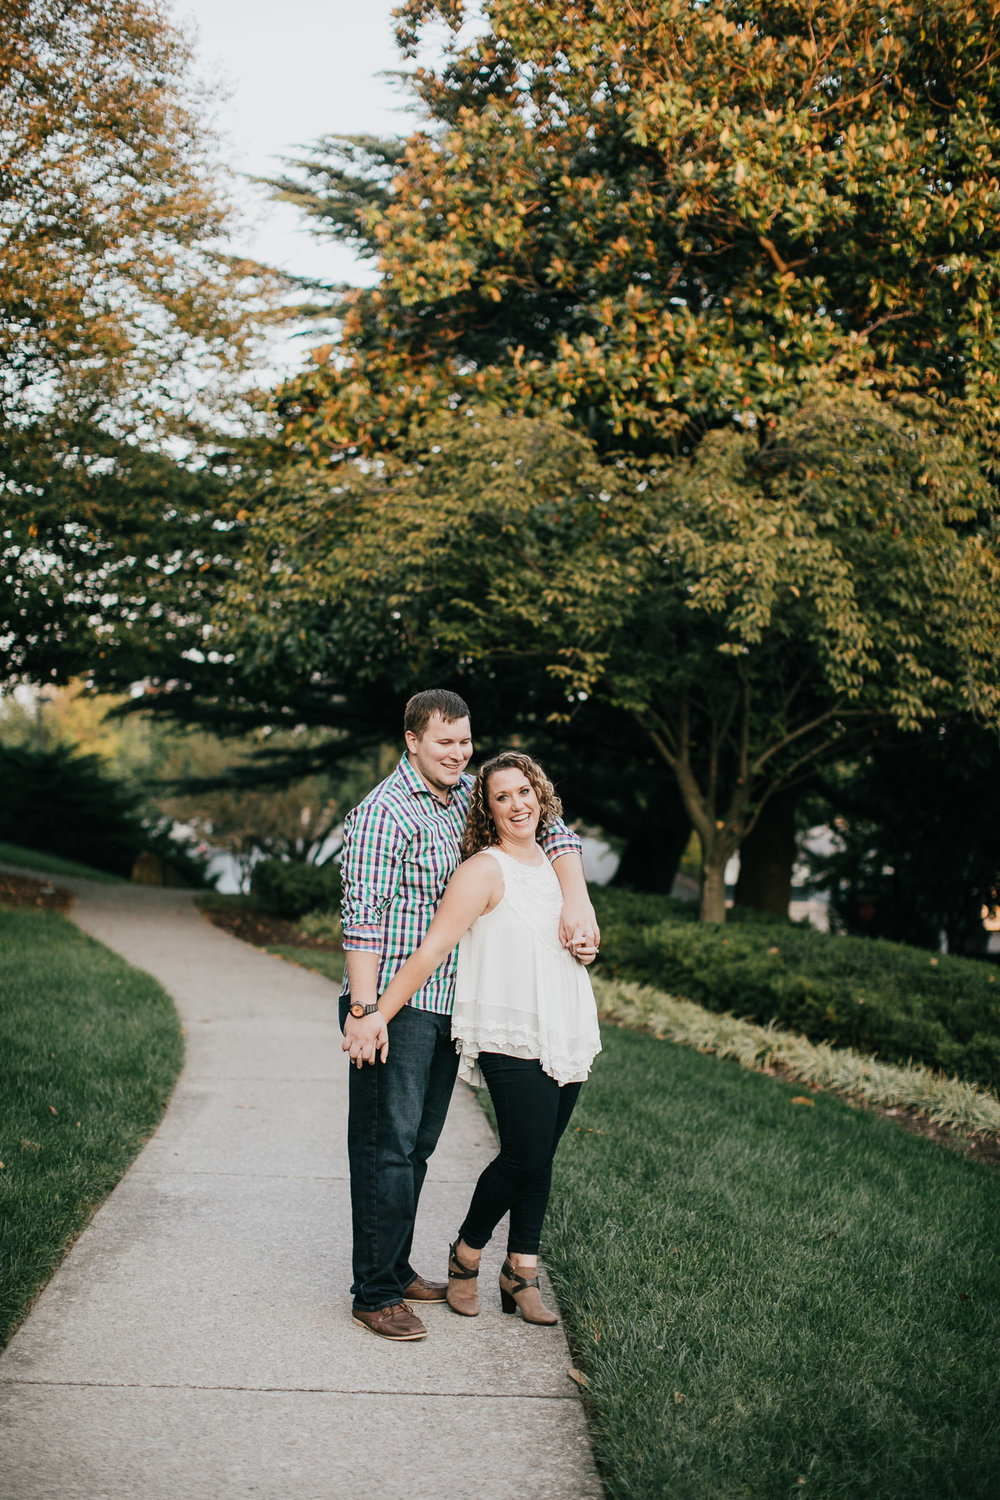 Roanoke - Engagement- Virginia wedding photographer - Pat Cori Photography-13.jpg